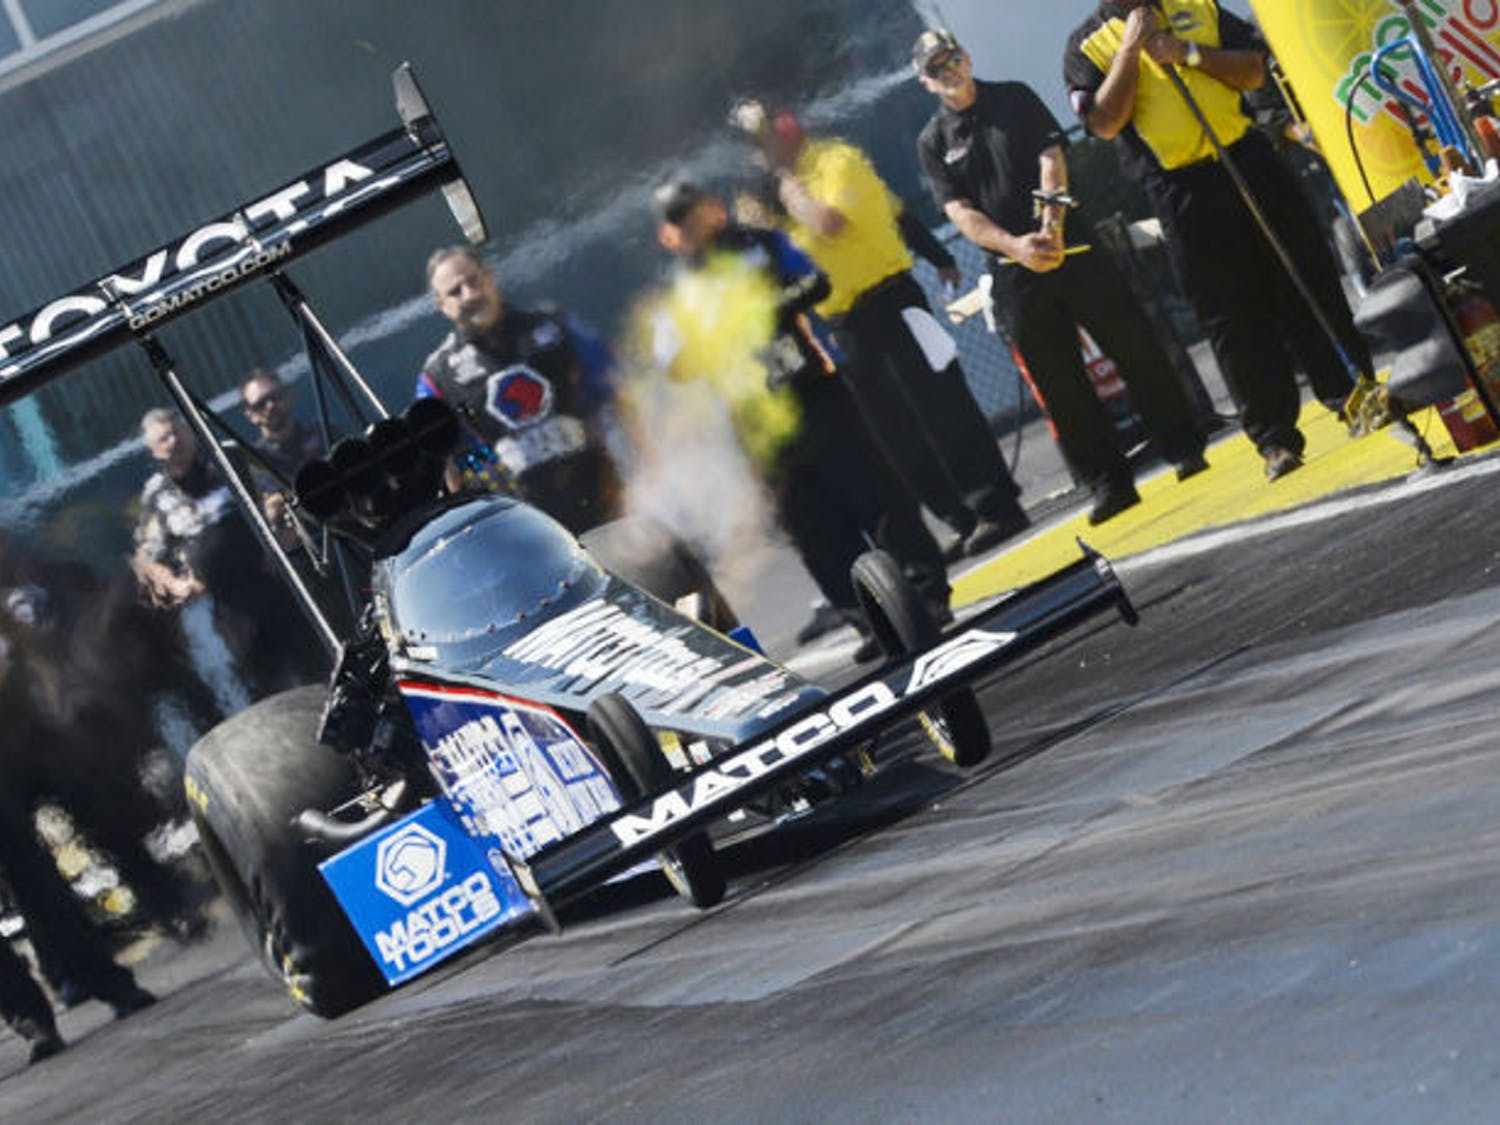 A top-fuel dragster races during Gatornationals on March 15 at Auto-Plus Raceway at Gainesville. The track hosts the annual national drag racing event each spring as well as weekly Test & Tune events.